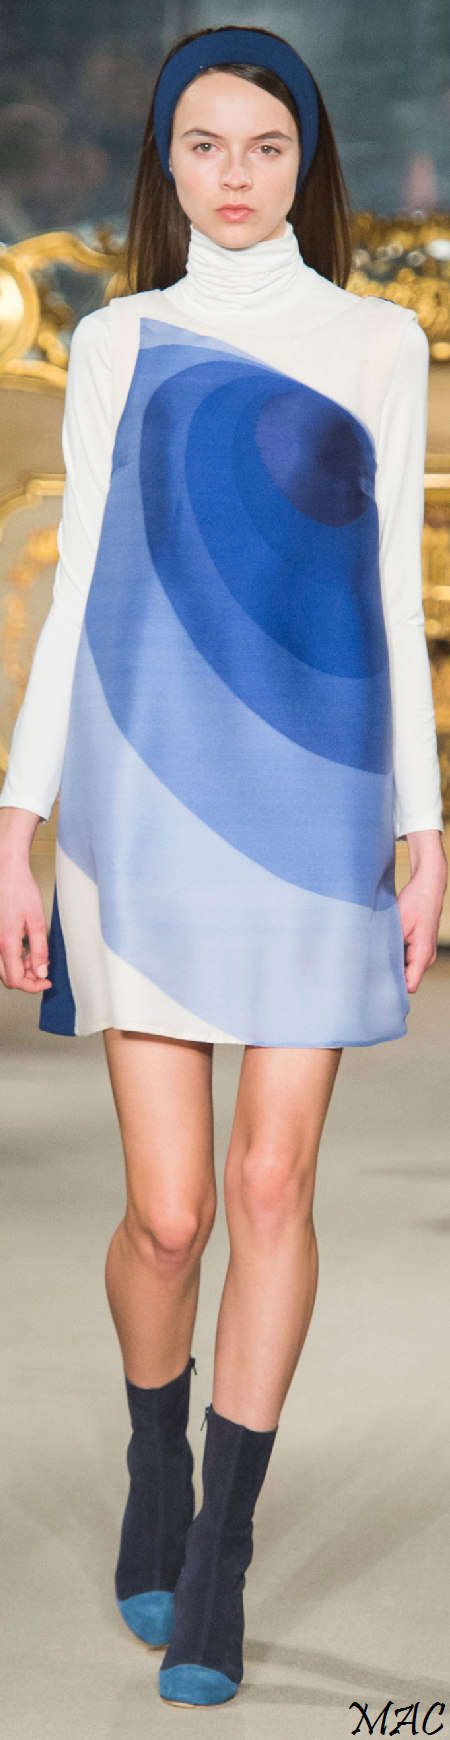 Fall 2015 Ready-to-Wear Chicca Lualdi